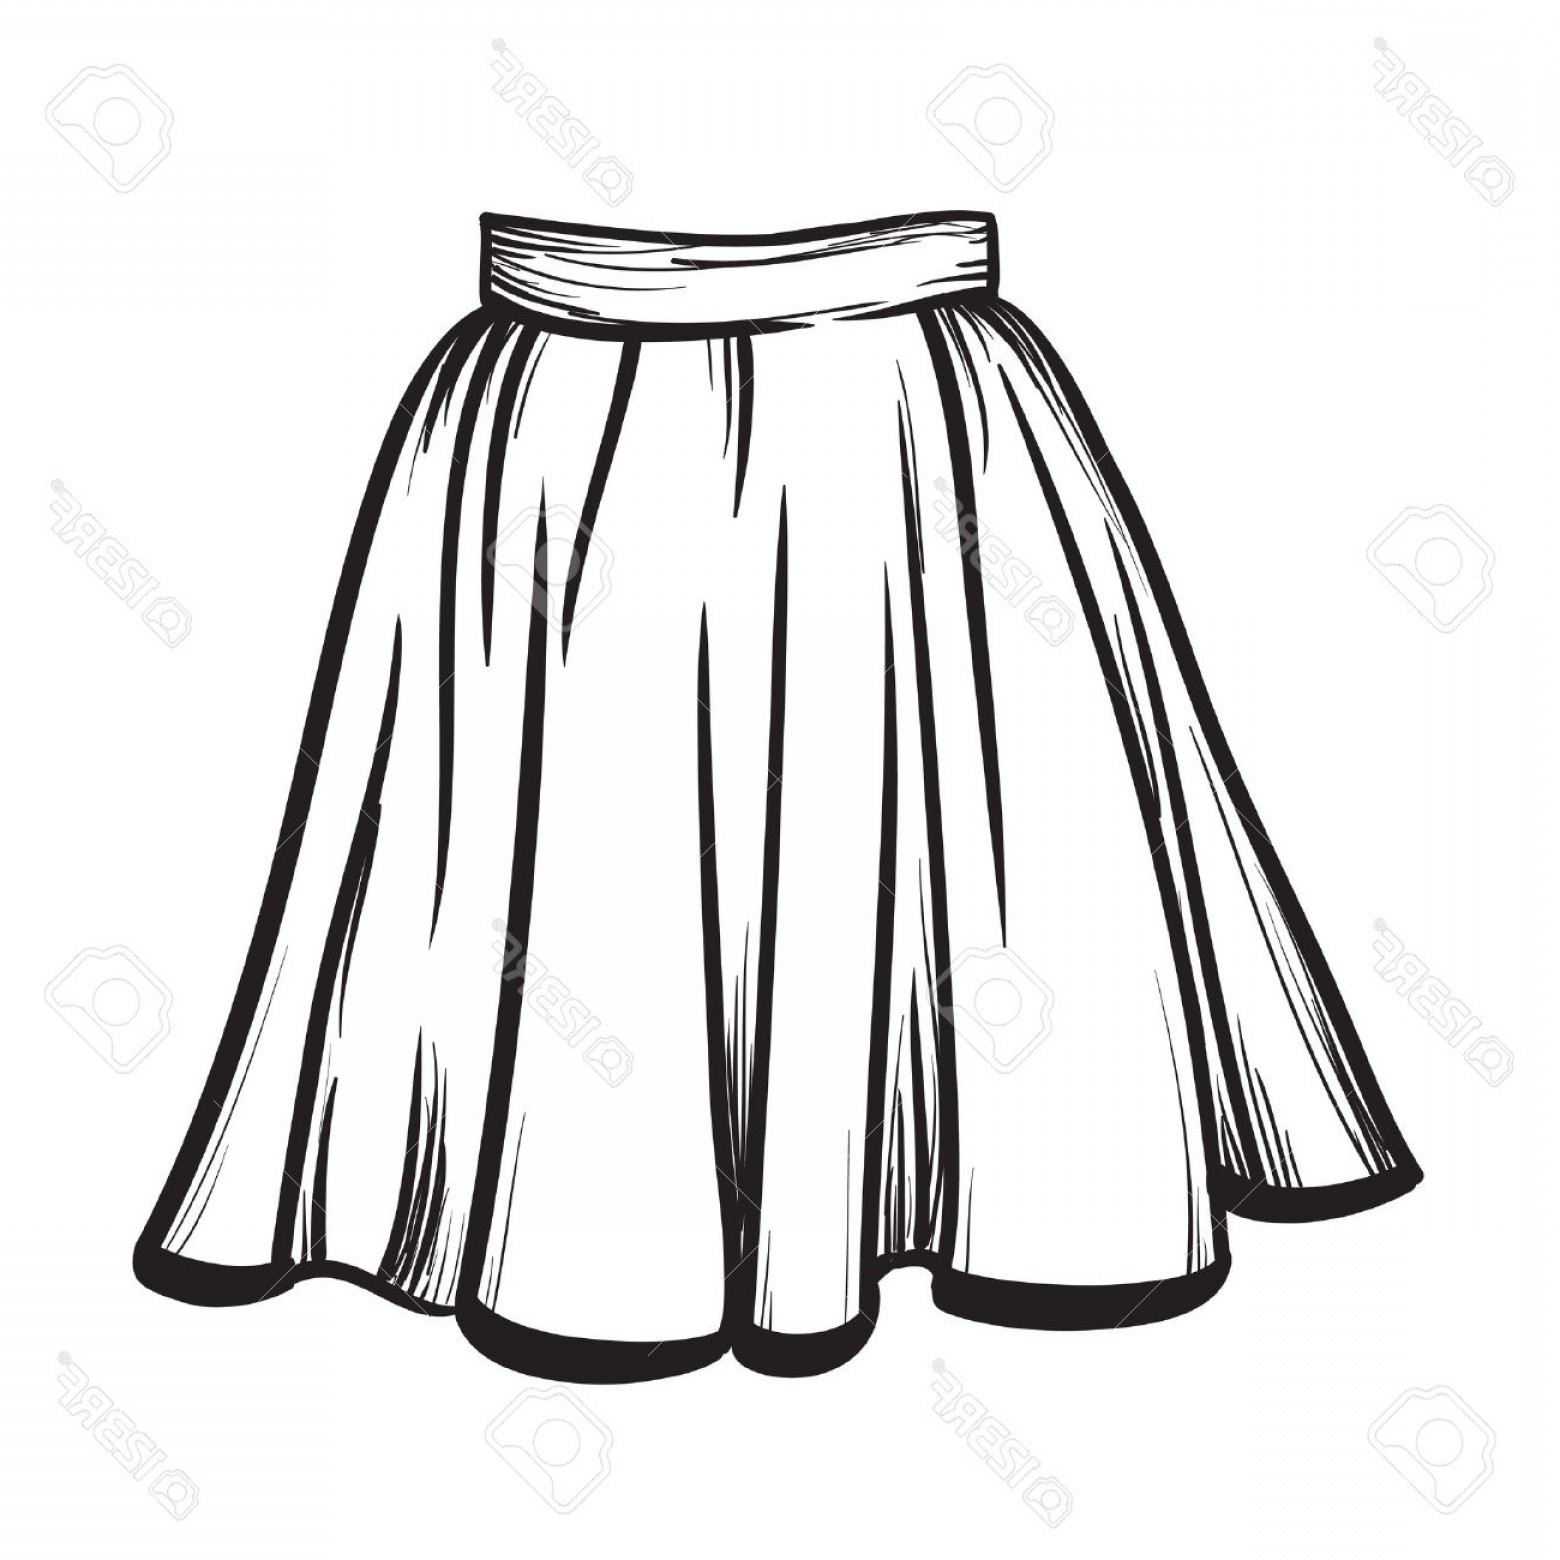 Photostock Vector Stylish Skirt Model Hand Drawn Vector.